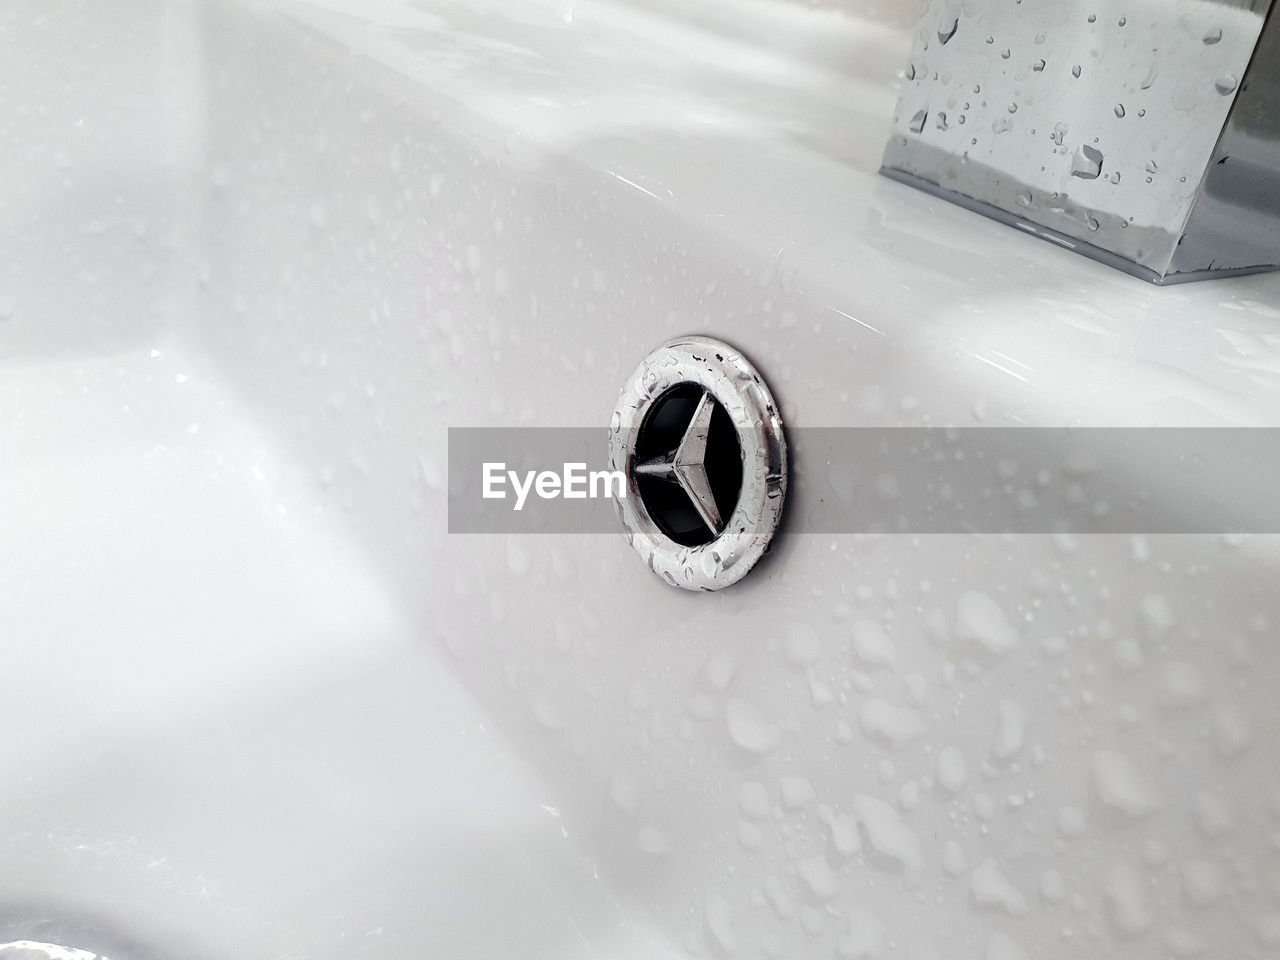 sink, bathroom, water, domestic bathroom, hygiene, home, household equipment, domestic room, indoors, close-up, no people, metal, drain, nature, wet, faucet, white color, high angle view, bathroom sink, running water, silver colored, steel